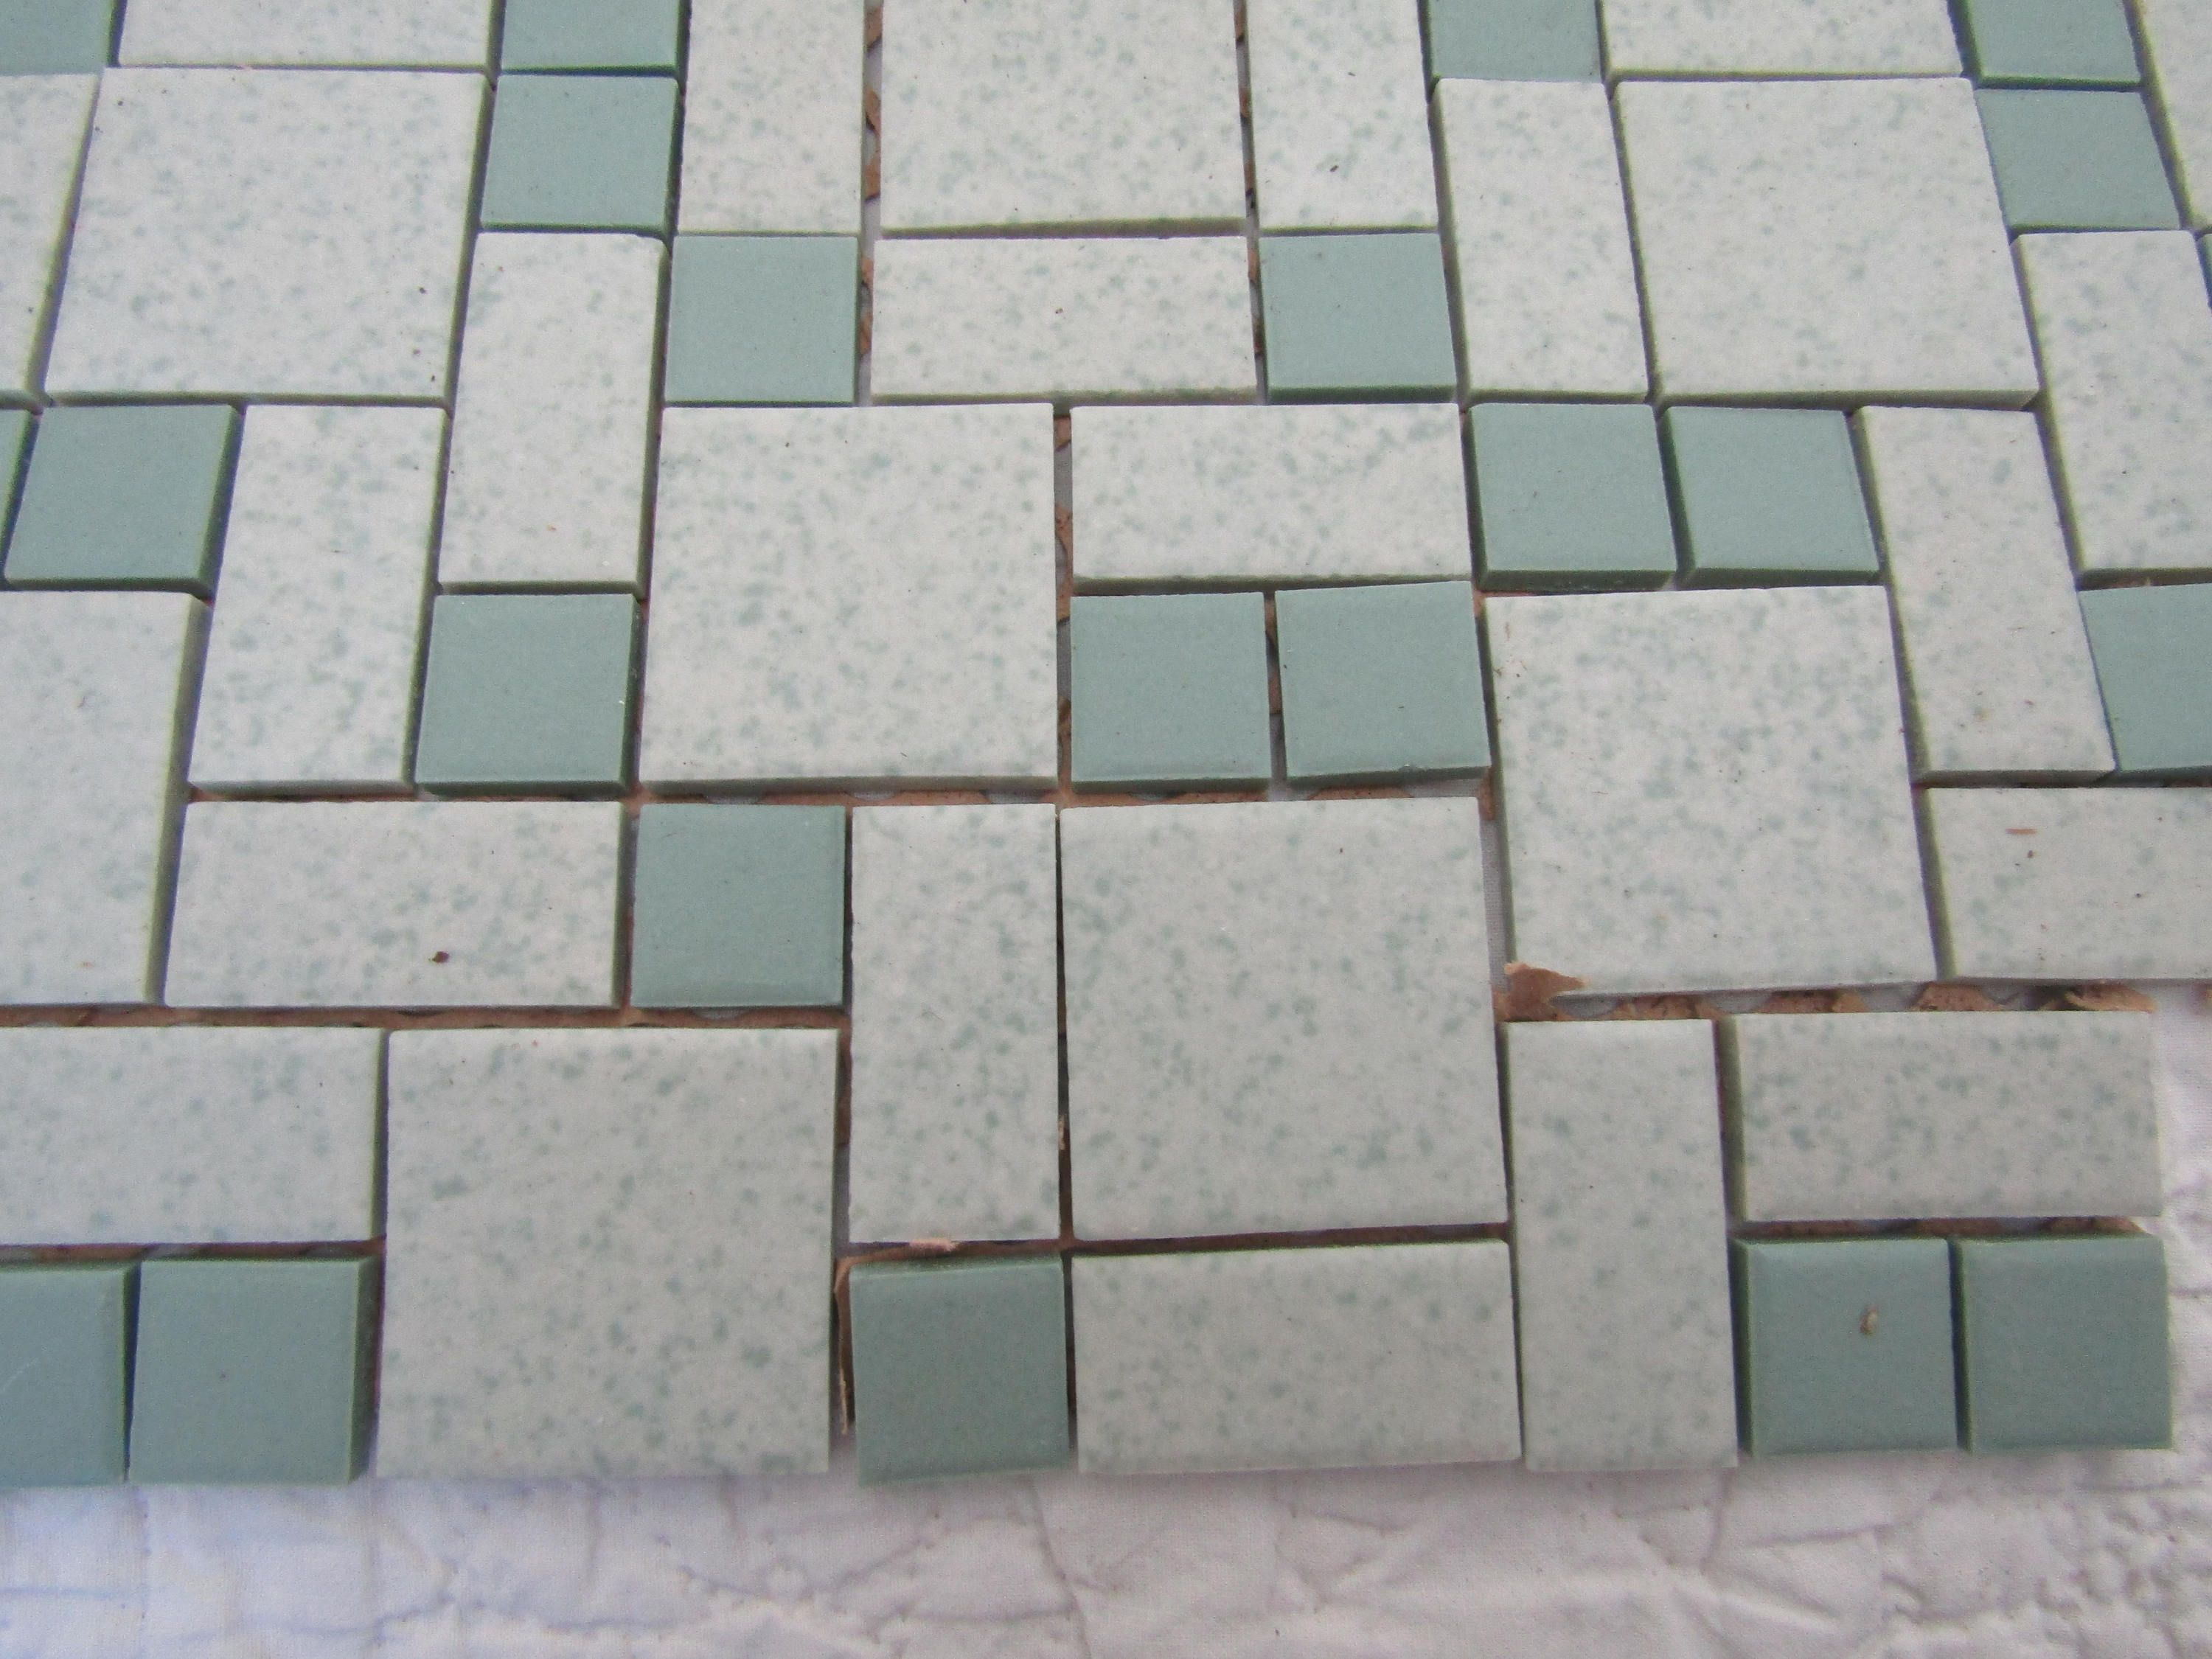 Vintage Ceramic Tile Small 1 X Tiles Speckled Nos Greens Full By